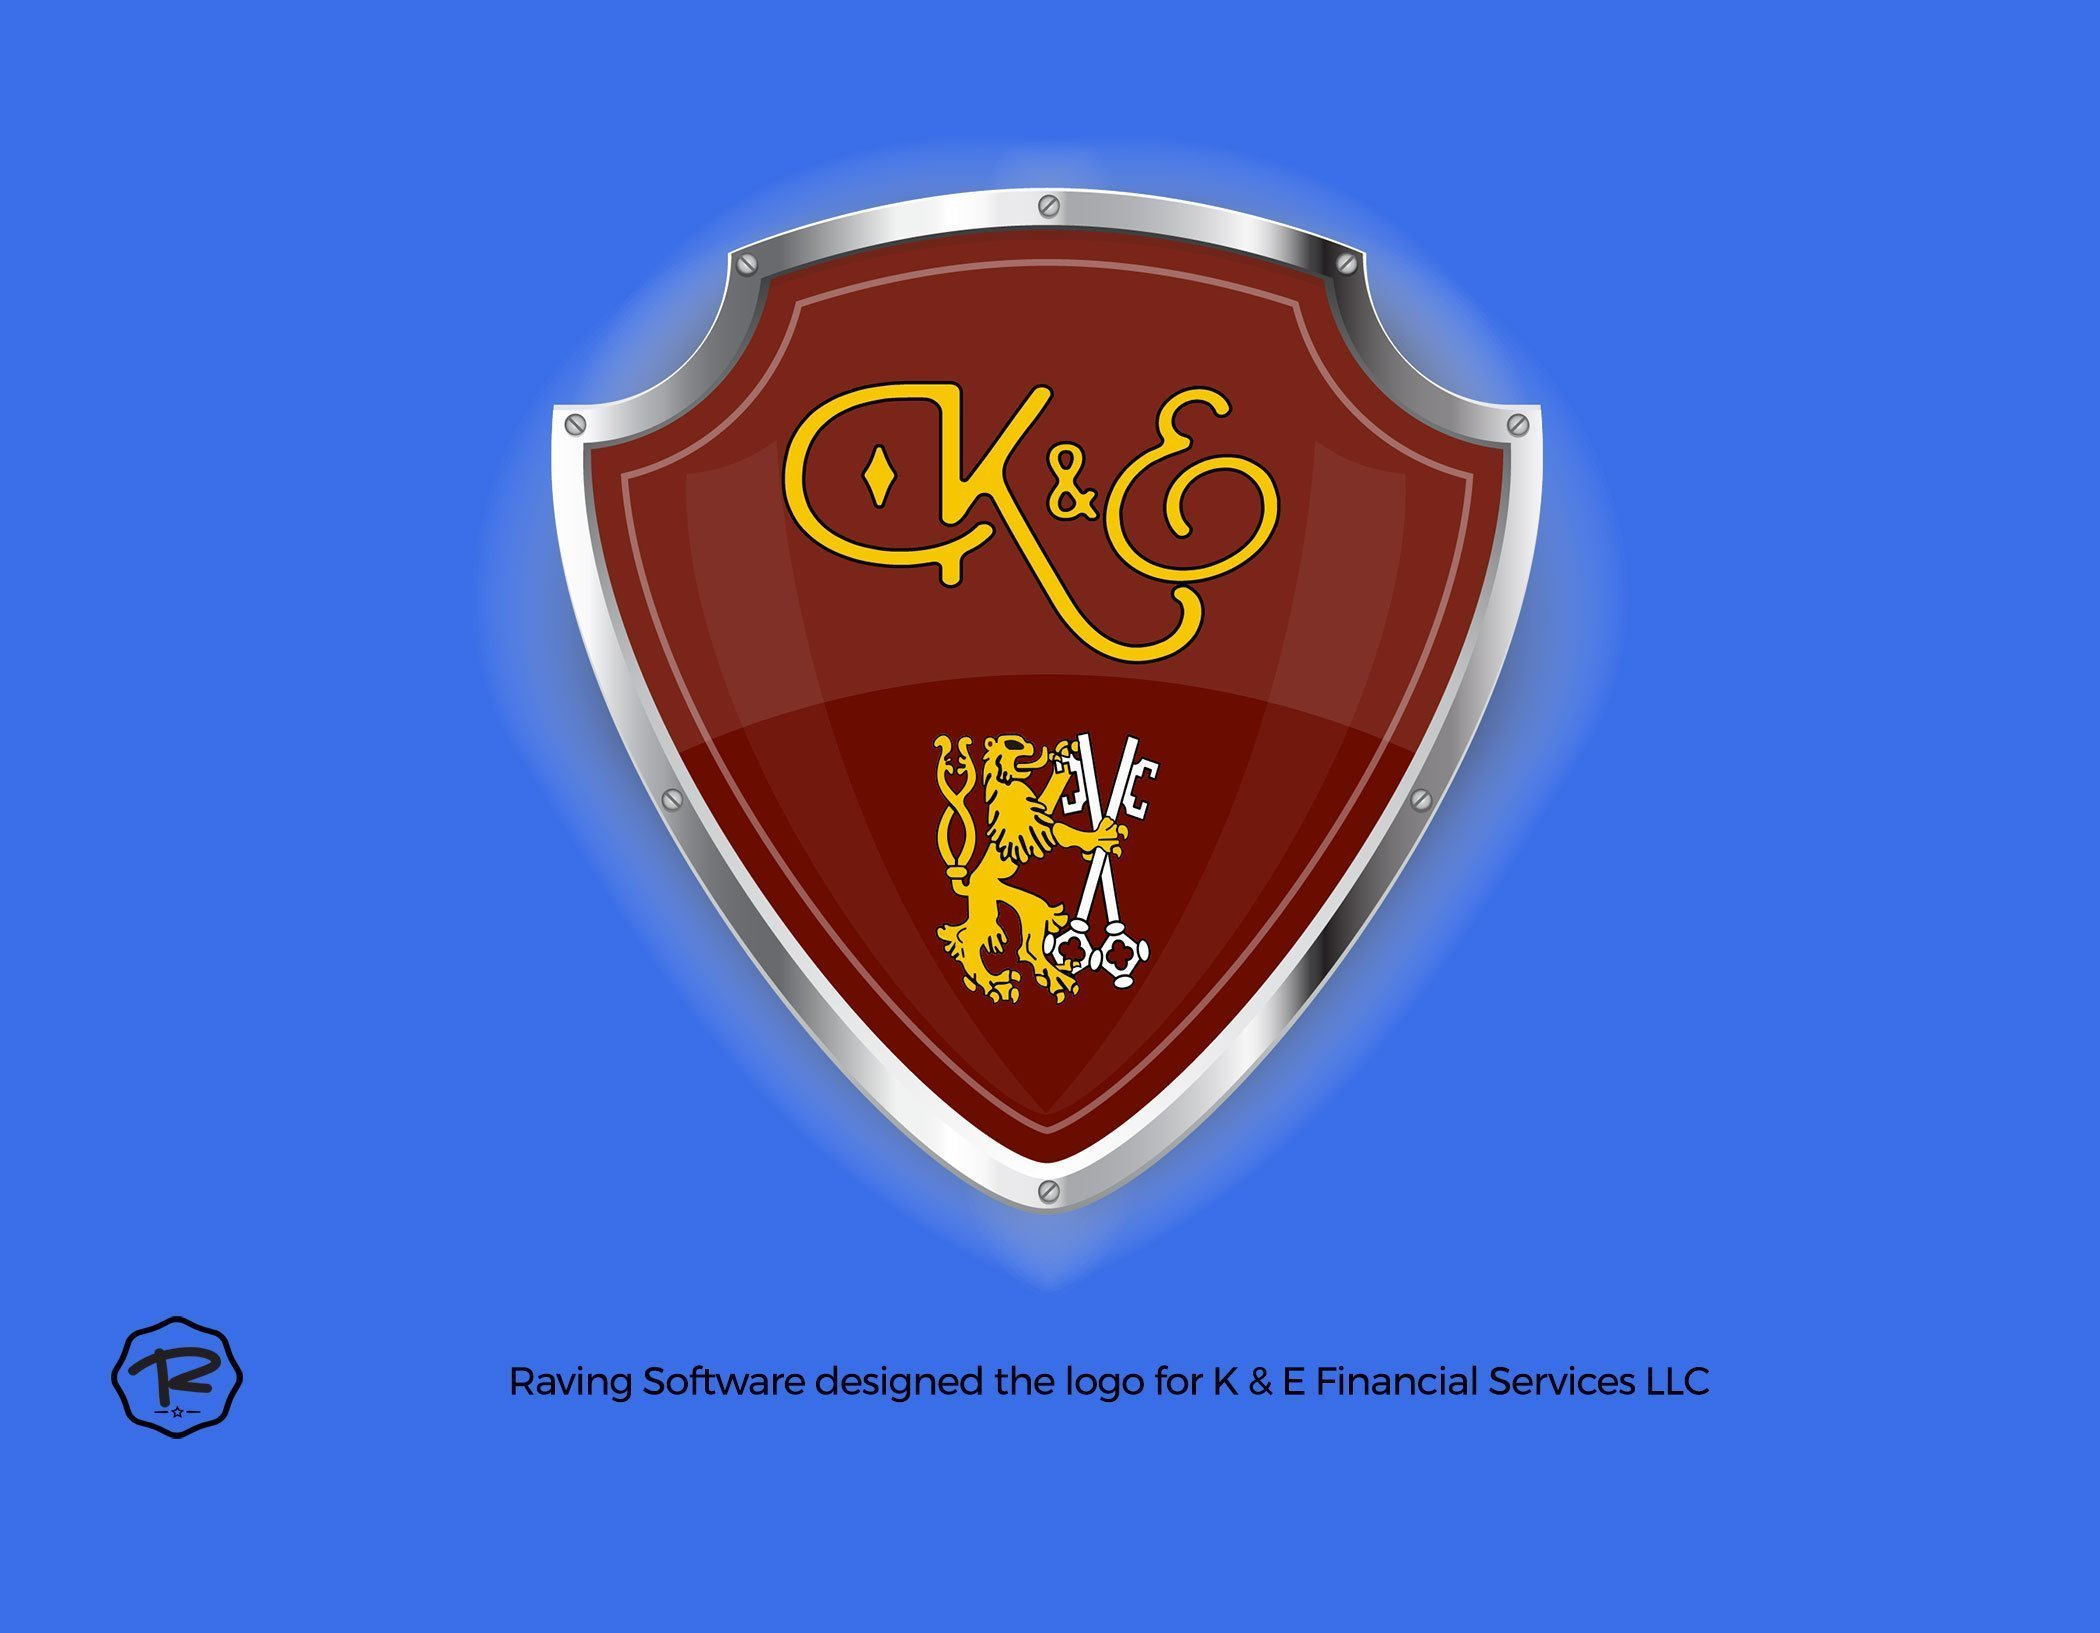 K&E Financial Services logo design by Raving Software